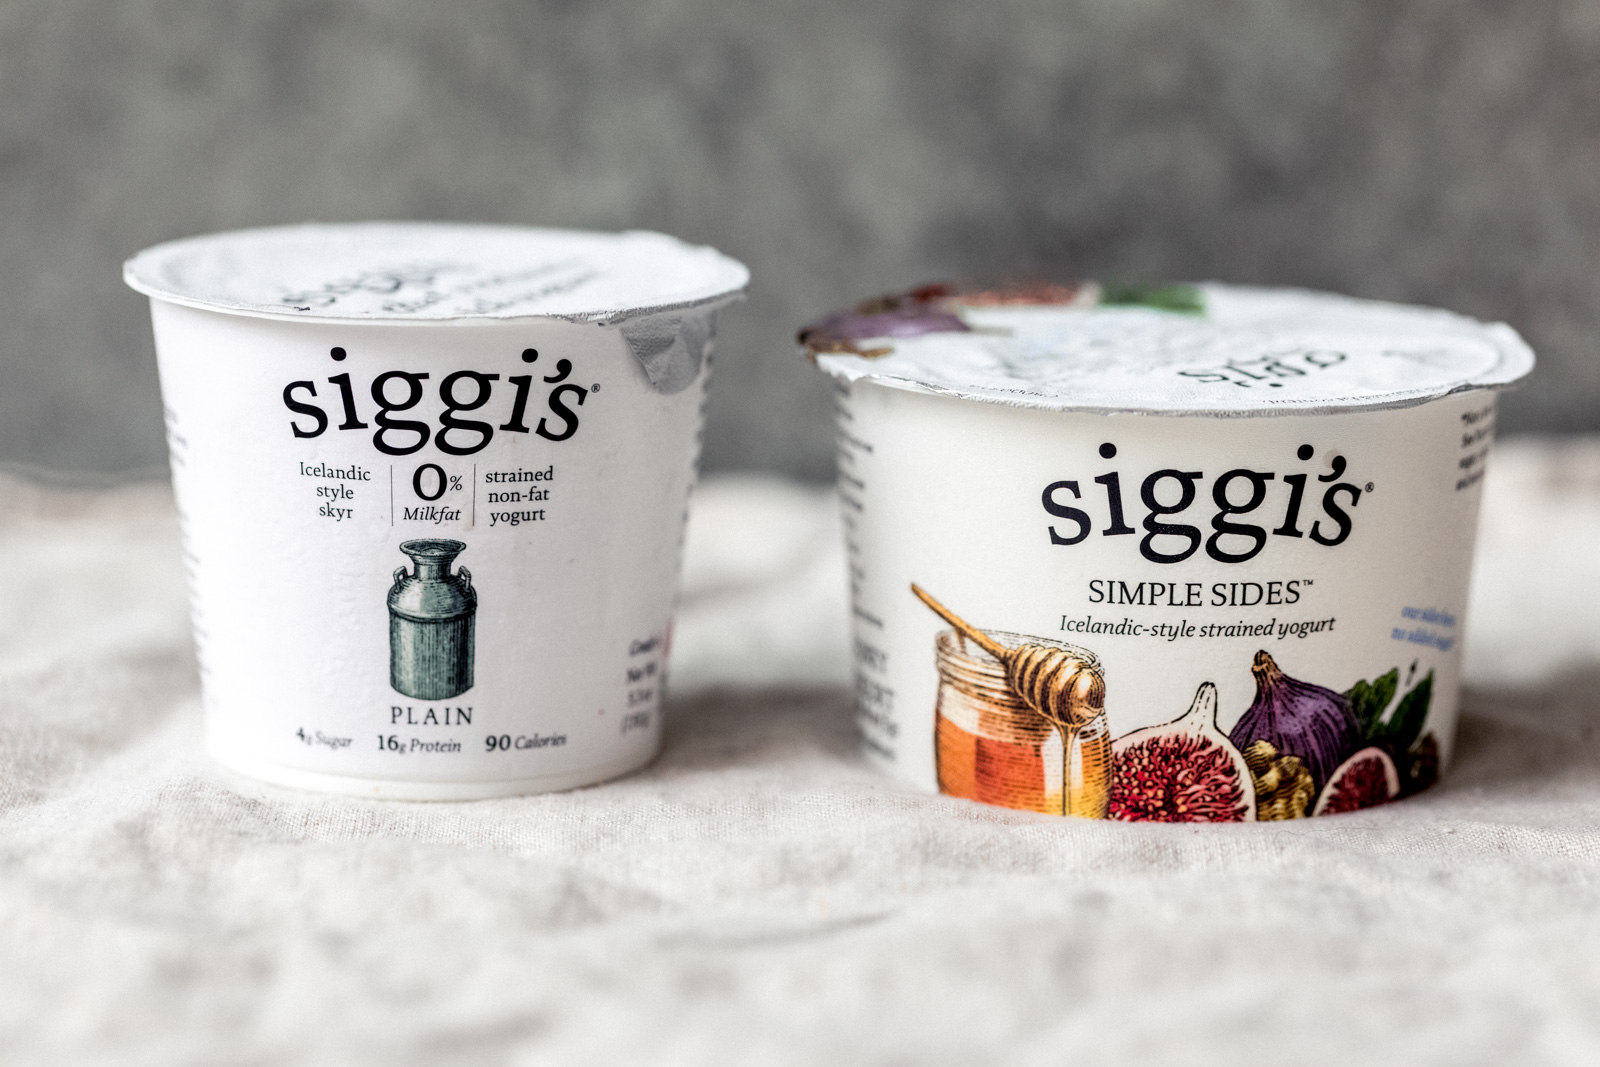 two containers of siggi's yogurt next to each other